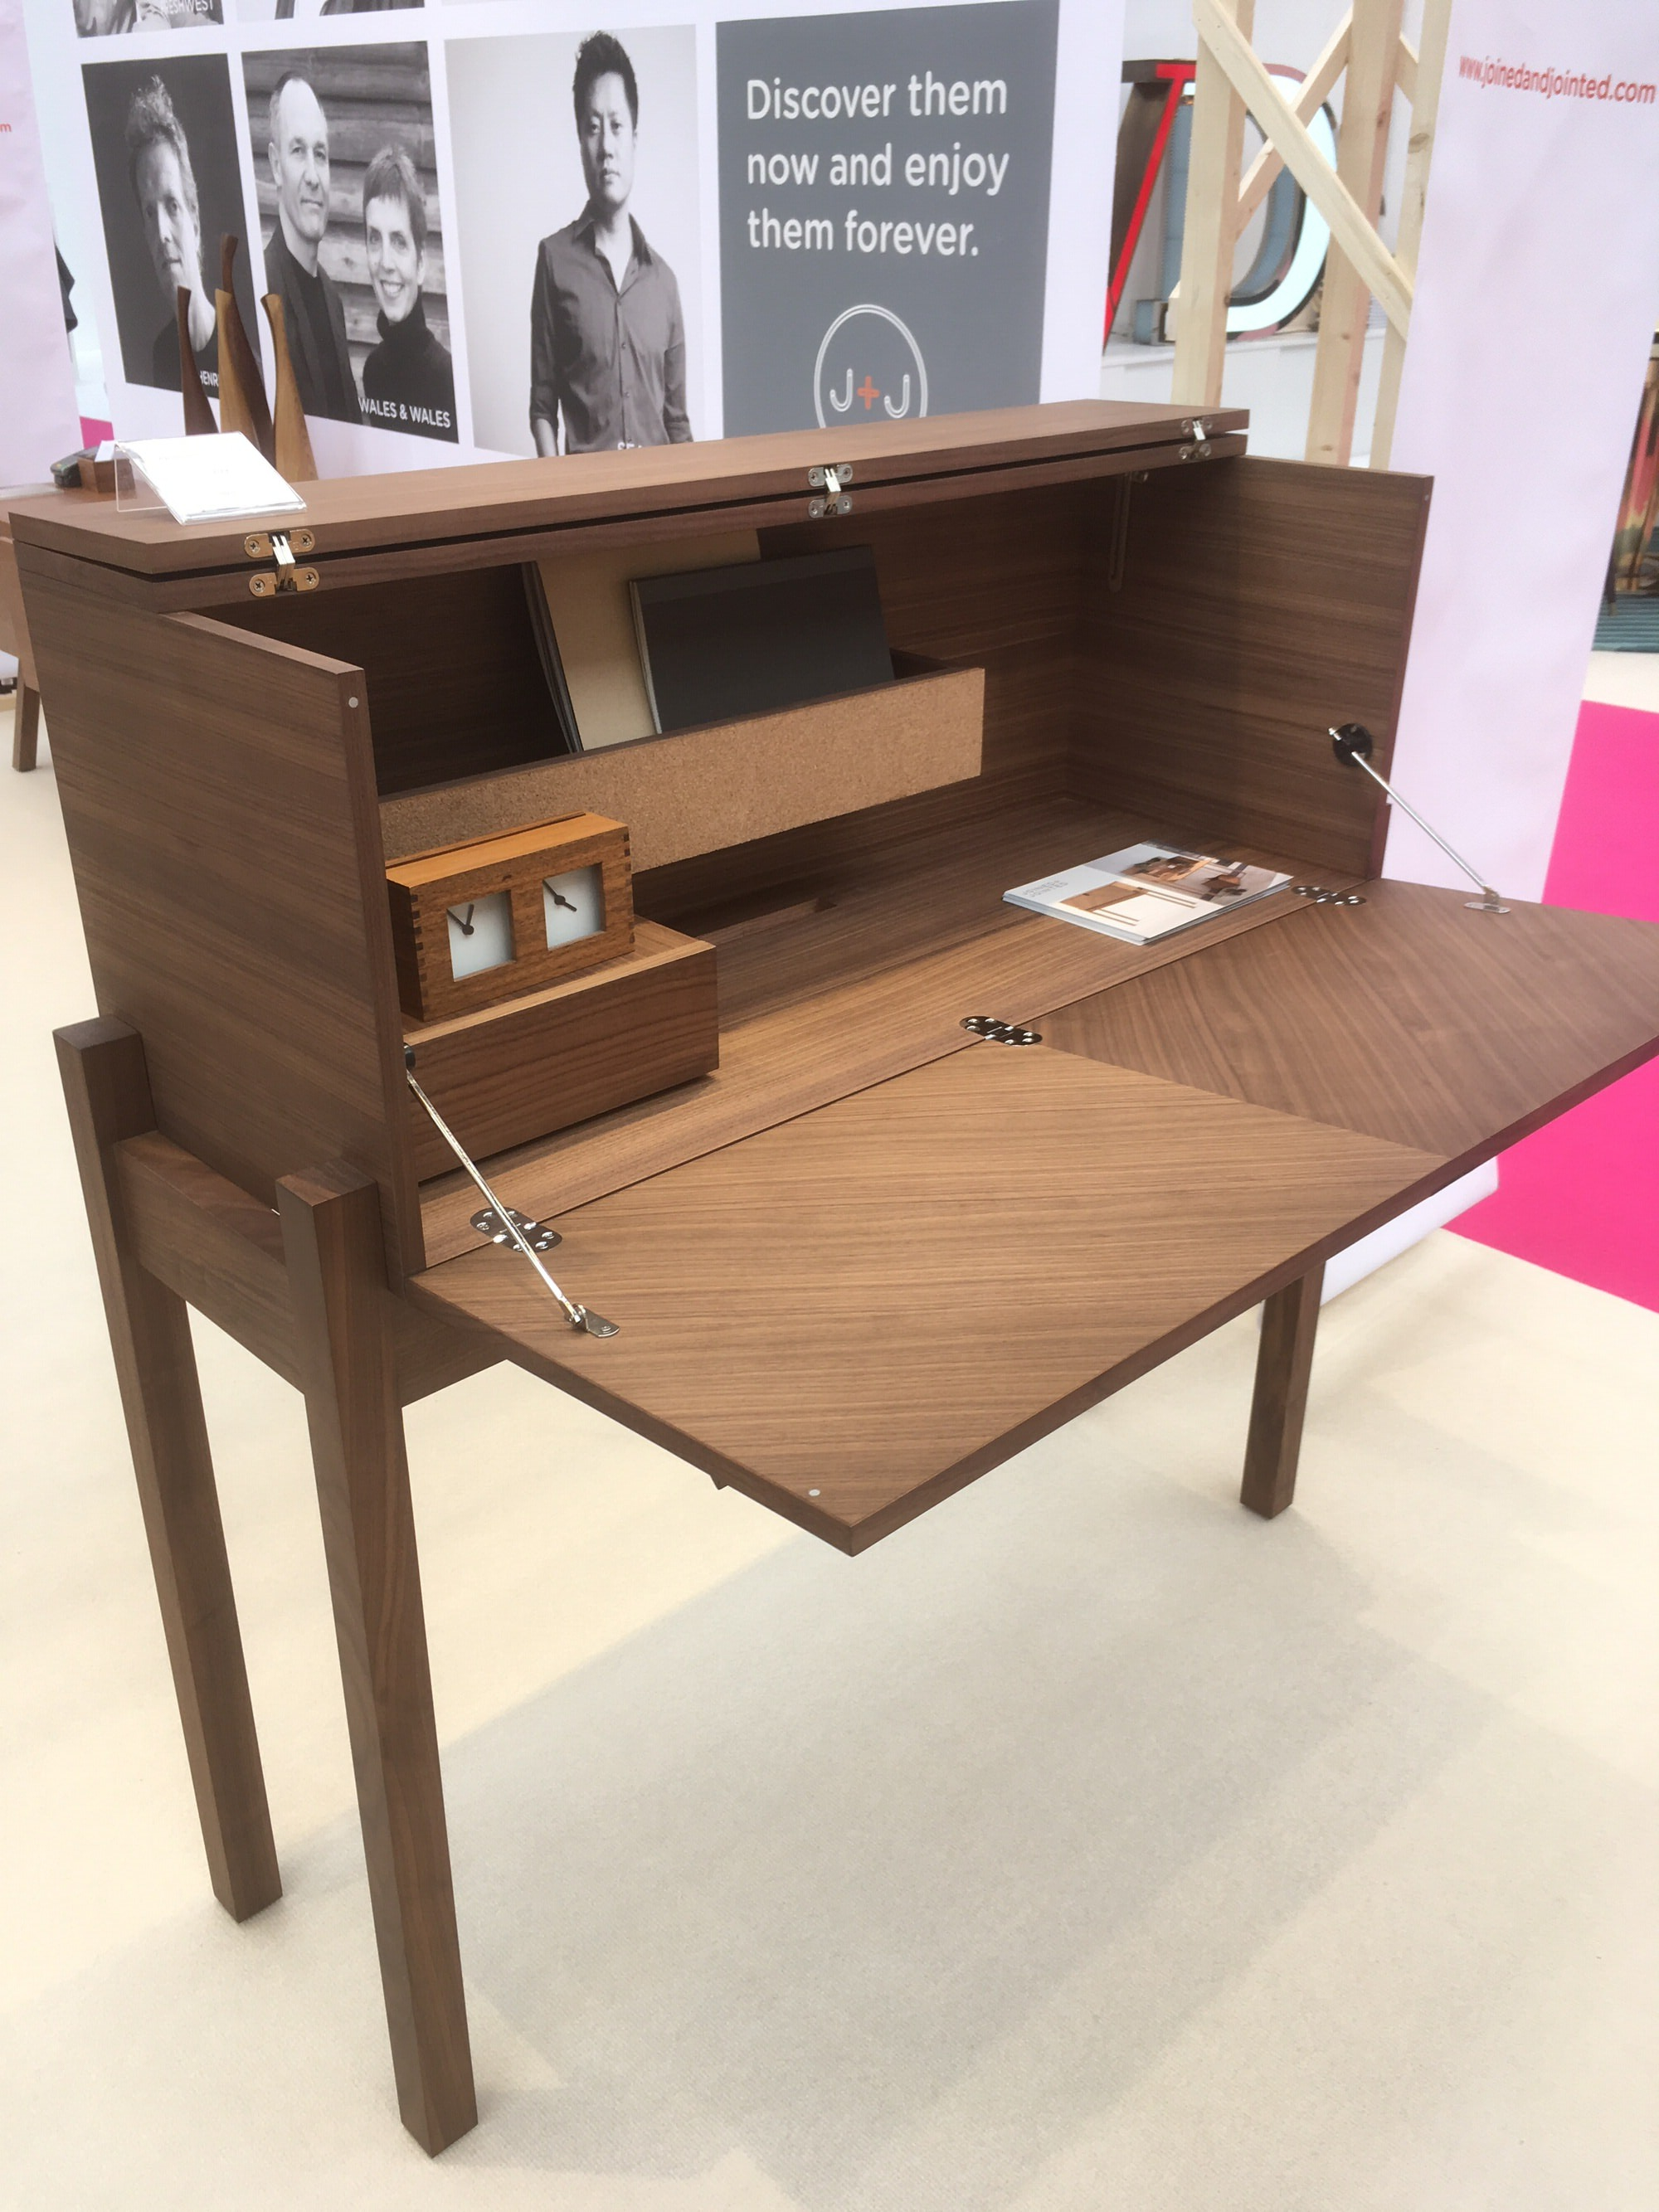 I spotted another wonderful desk from the @joinedandjointed by Lucy Kurrein, beautiful in walnut and oak.